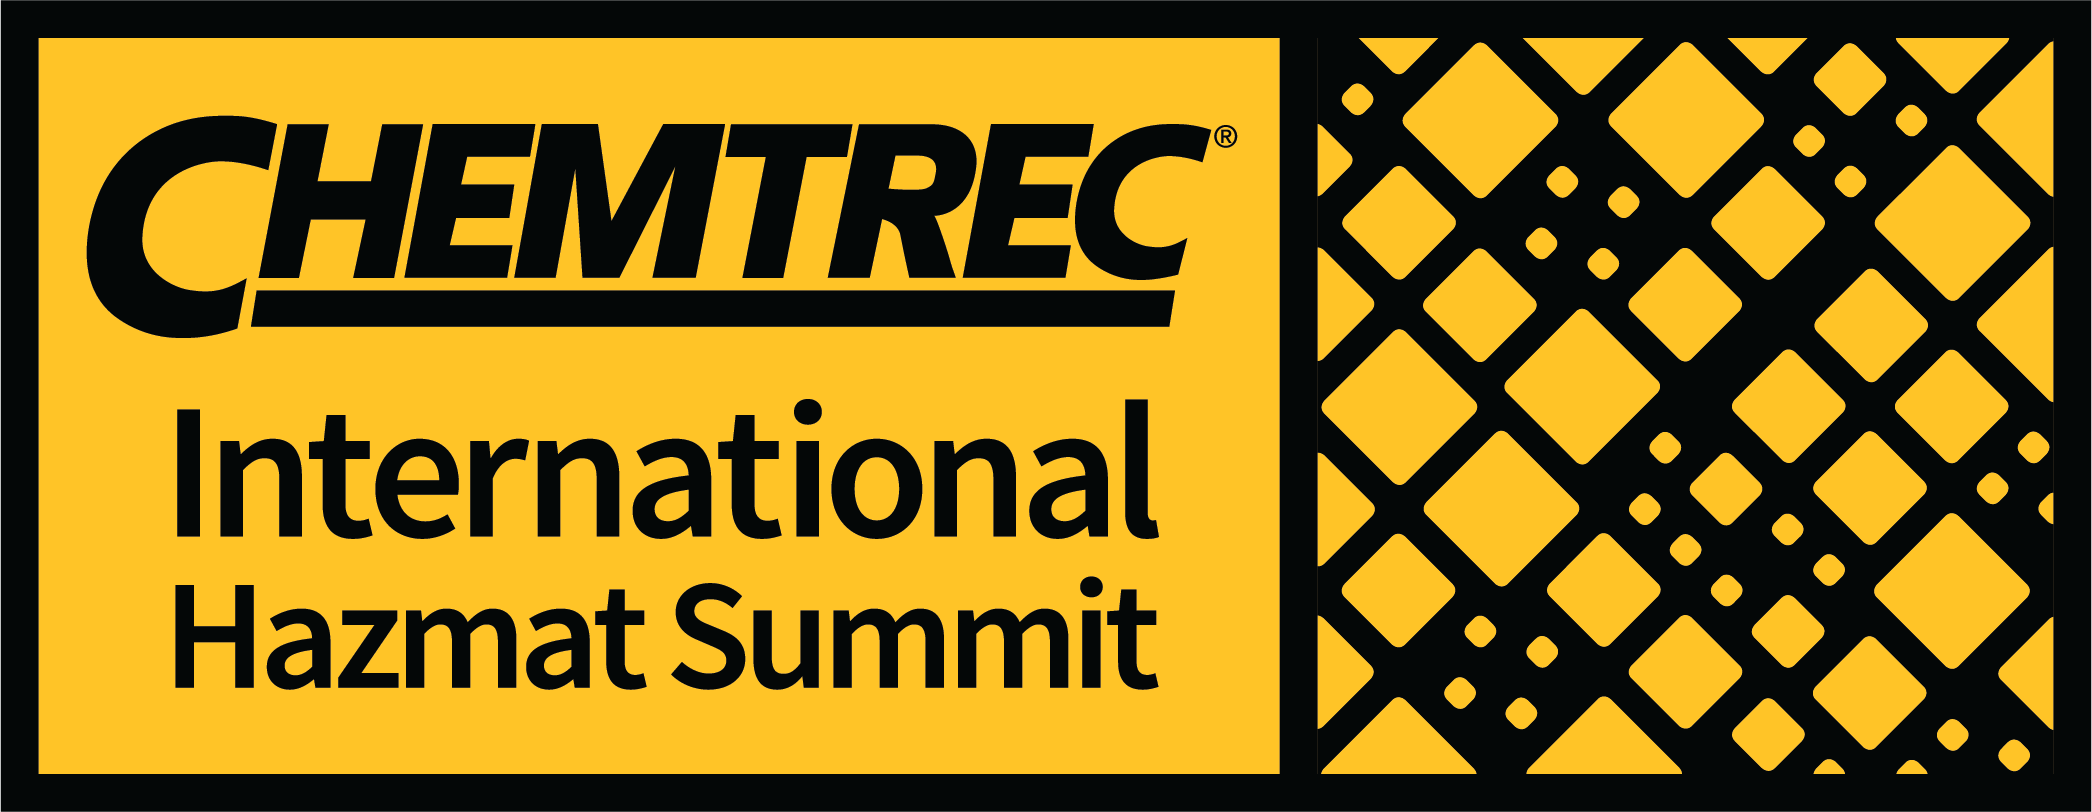 CHEMTREC International Hazmat Summit